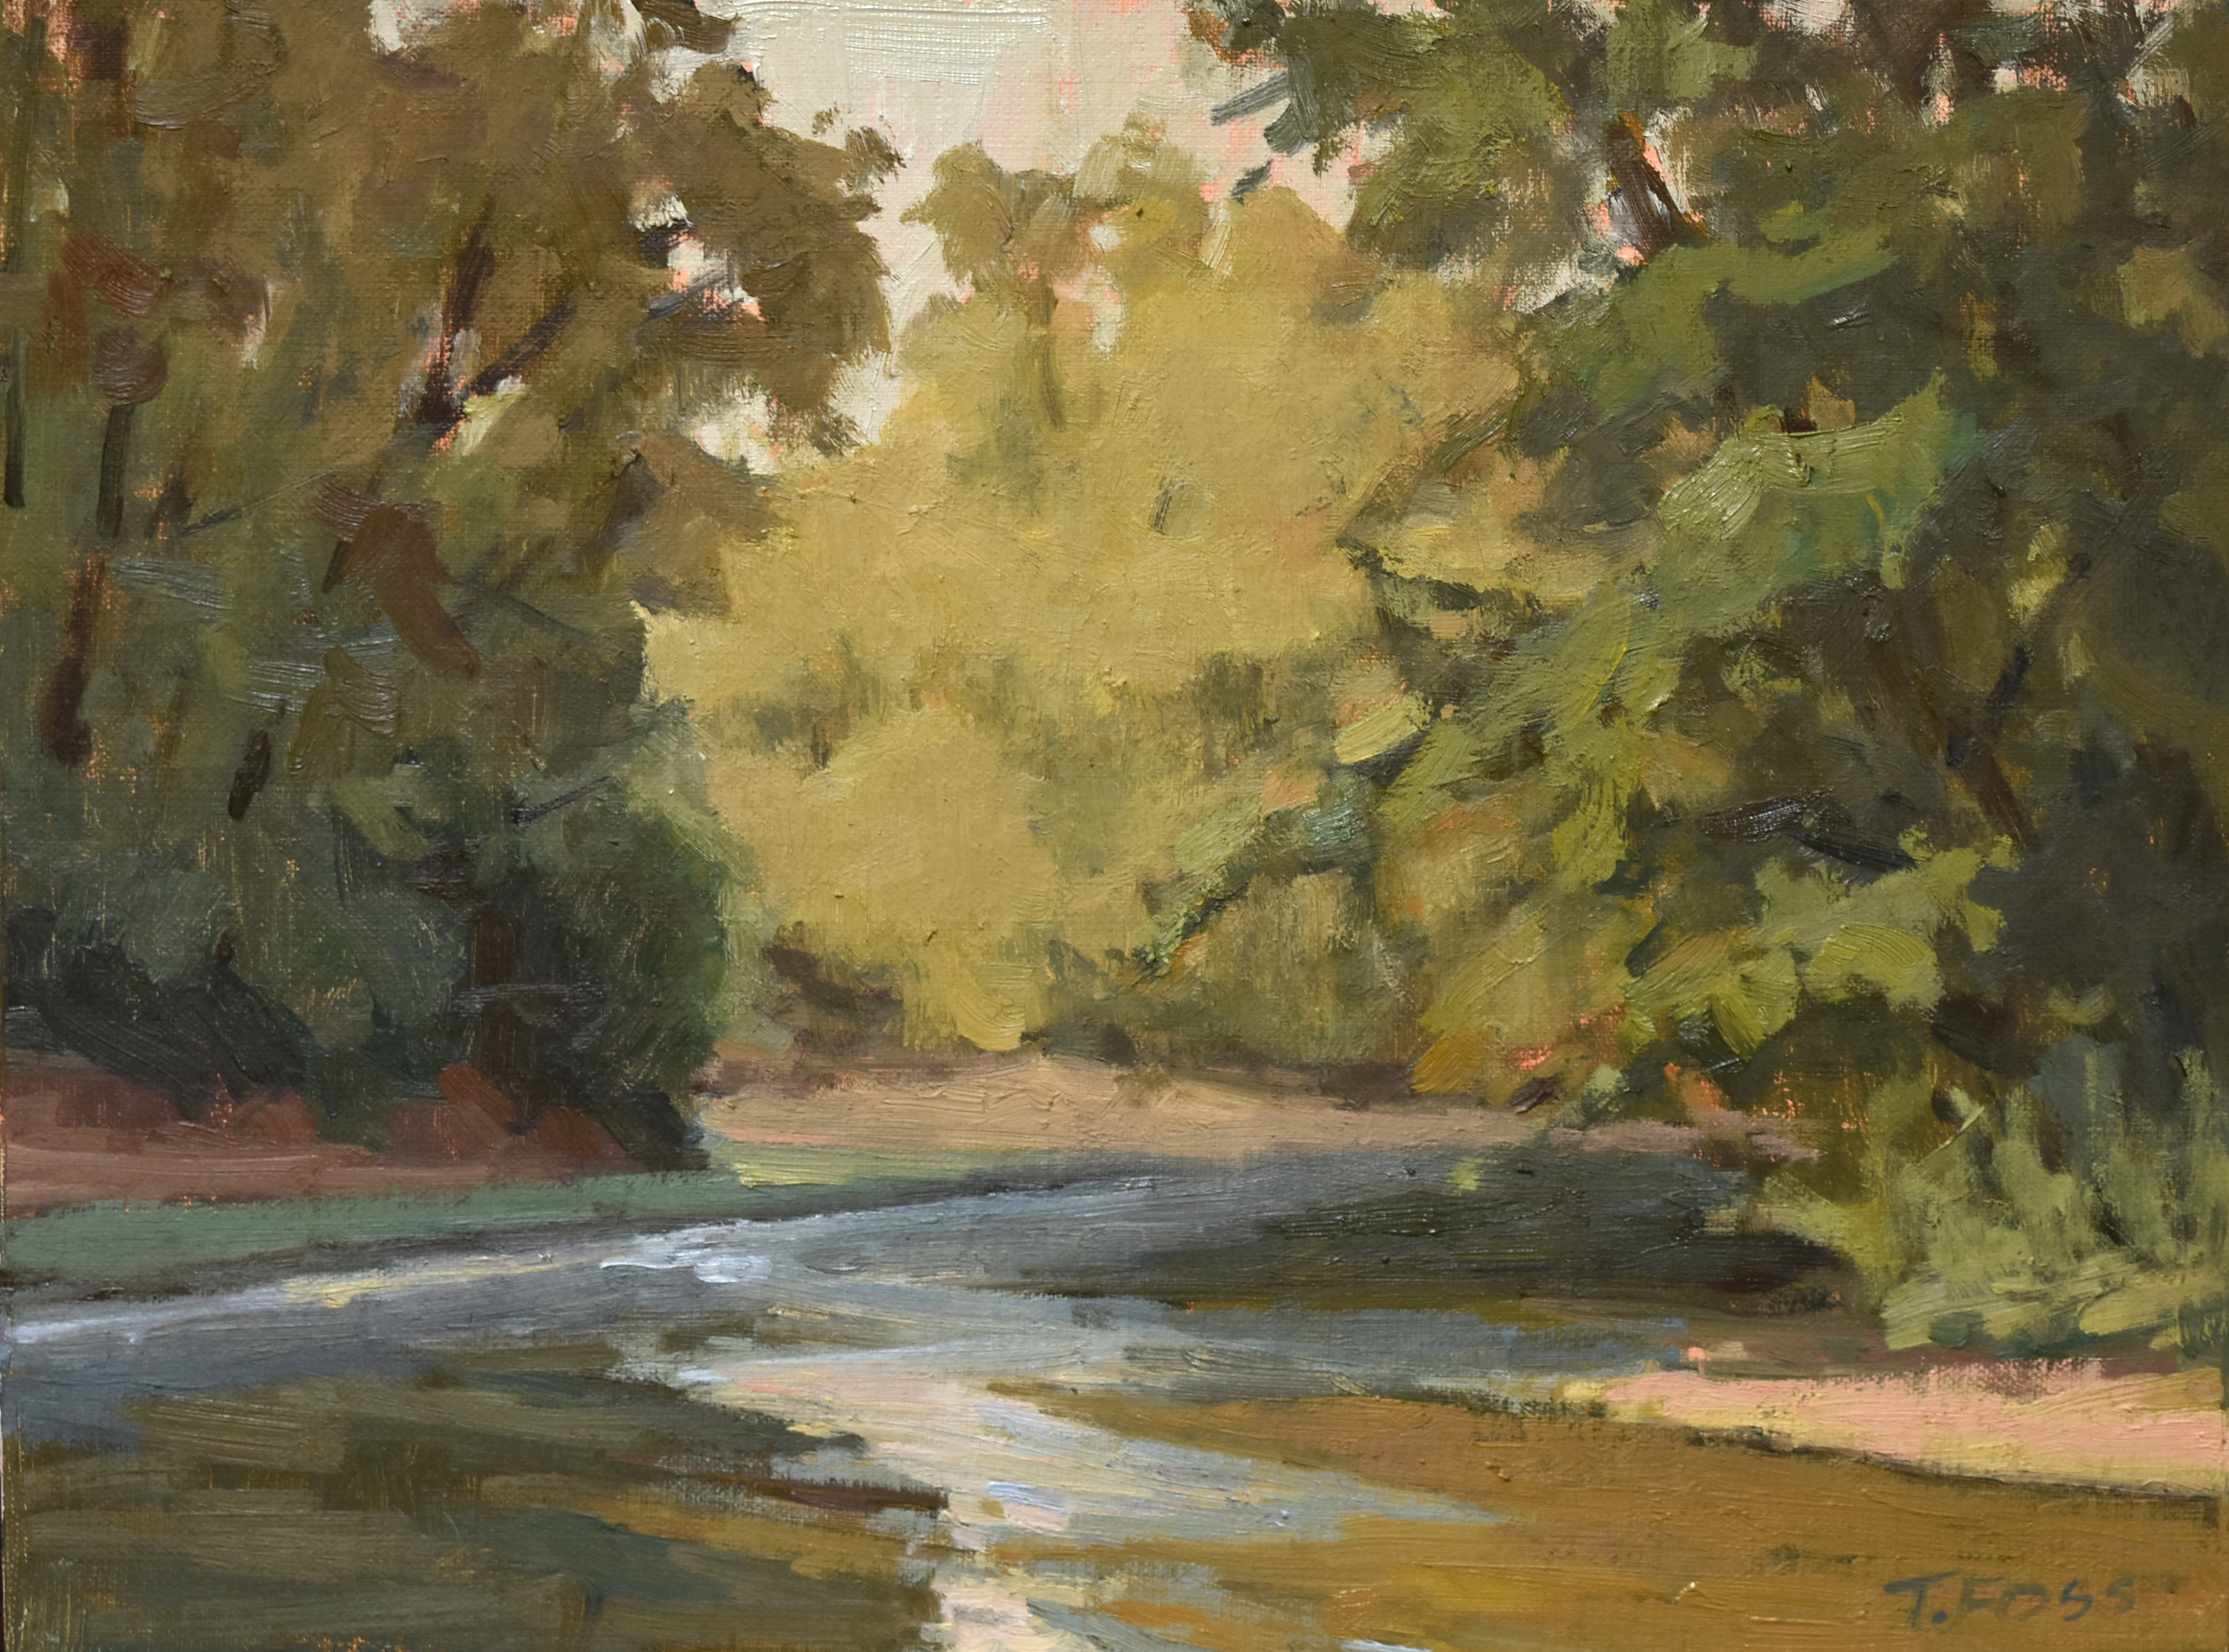 Harpeth River commission